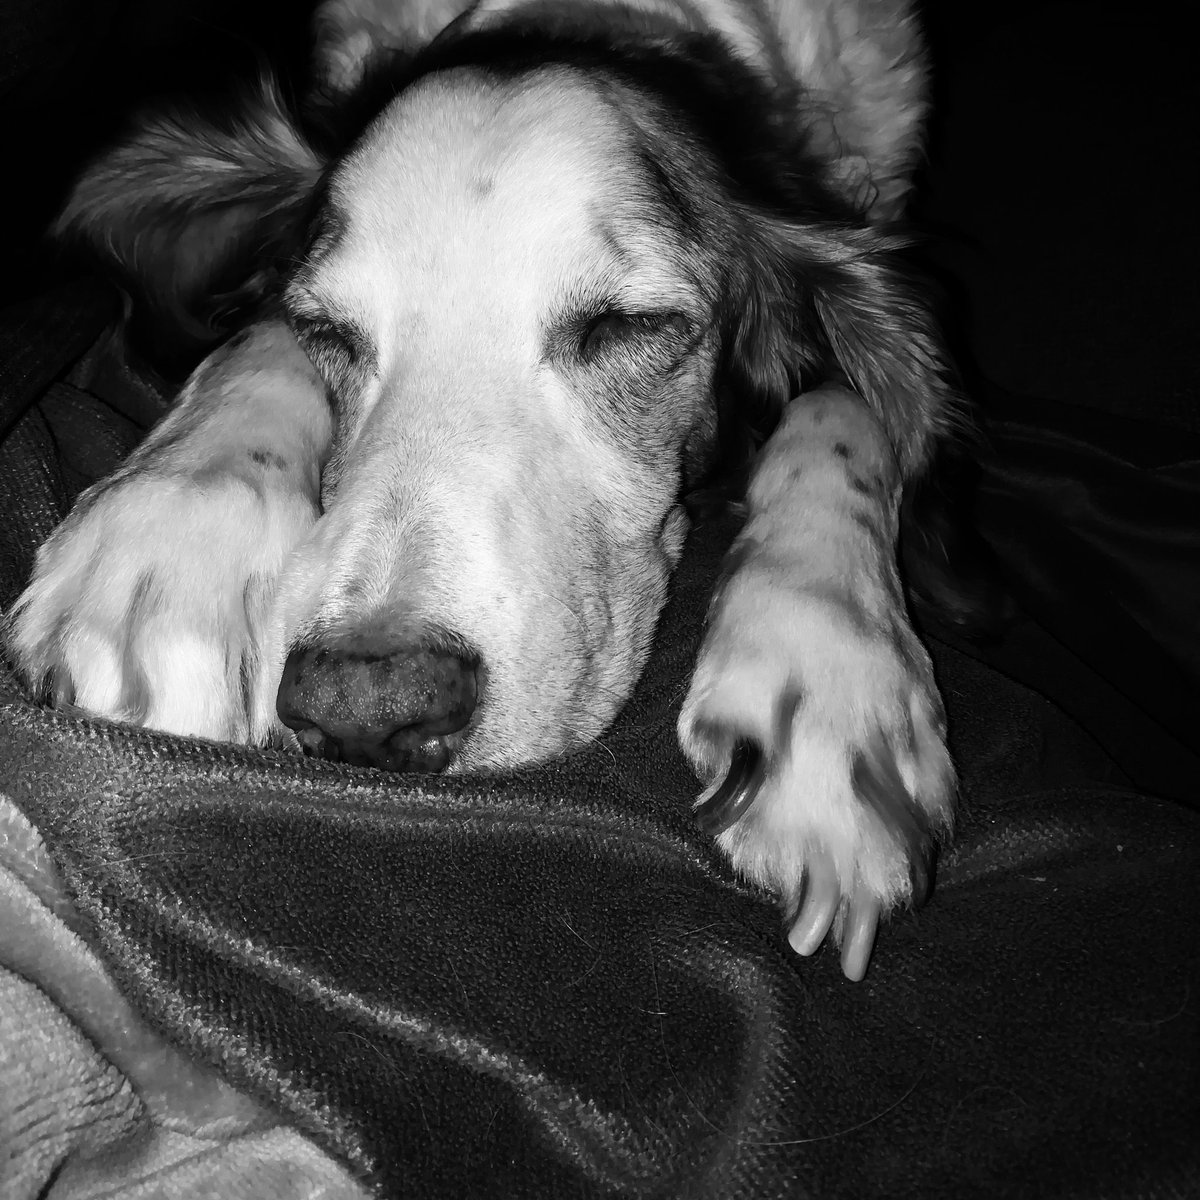 Claws, paws n snores  #blackandwhitephotography  #DogsofTwittter pic.twitter.com/9AUXpQ7V1G